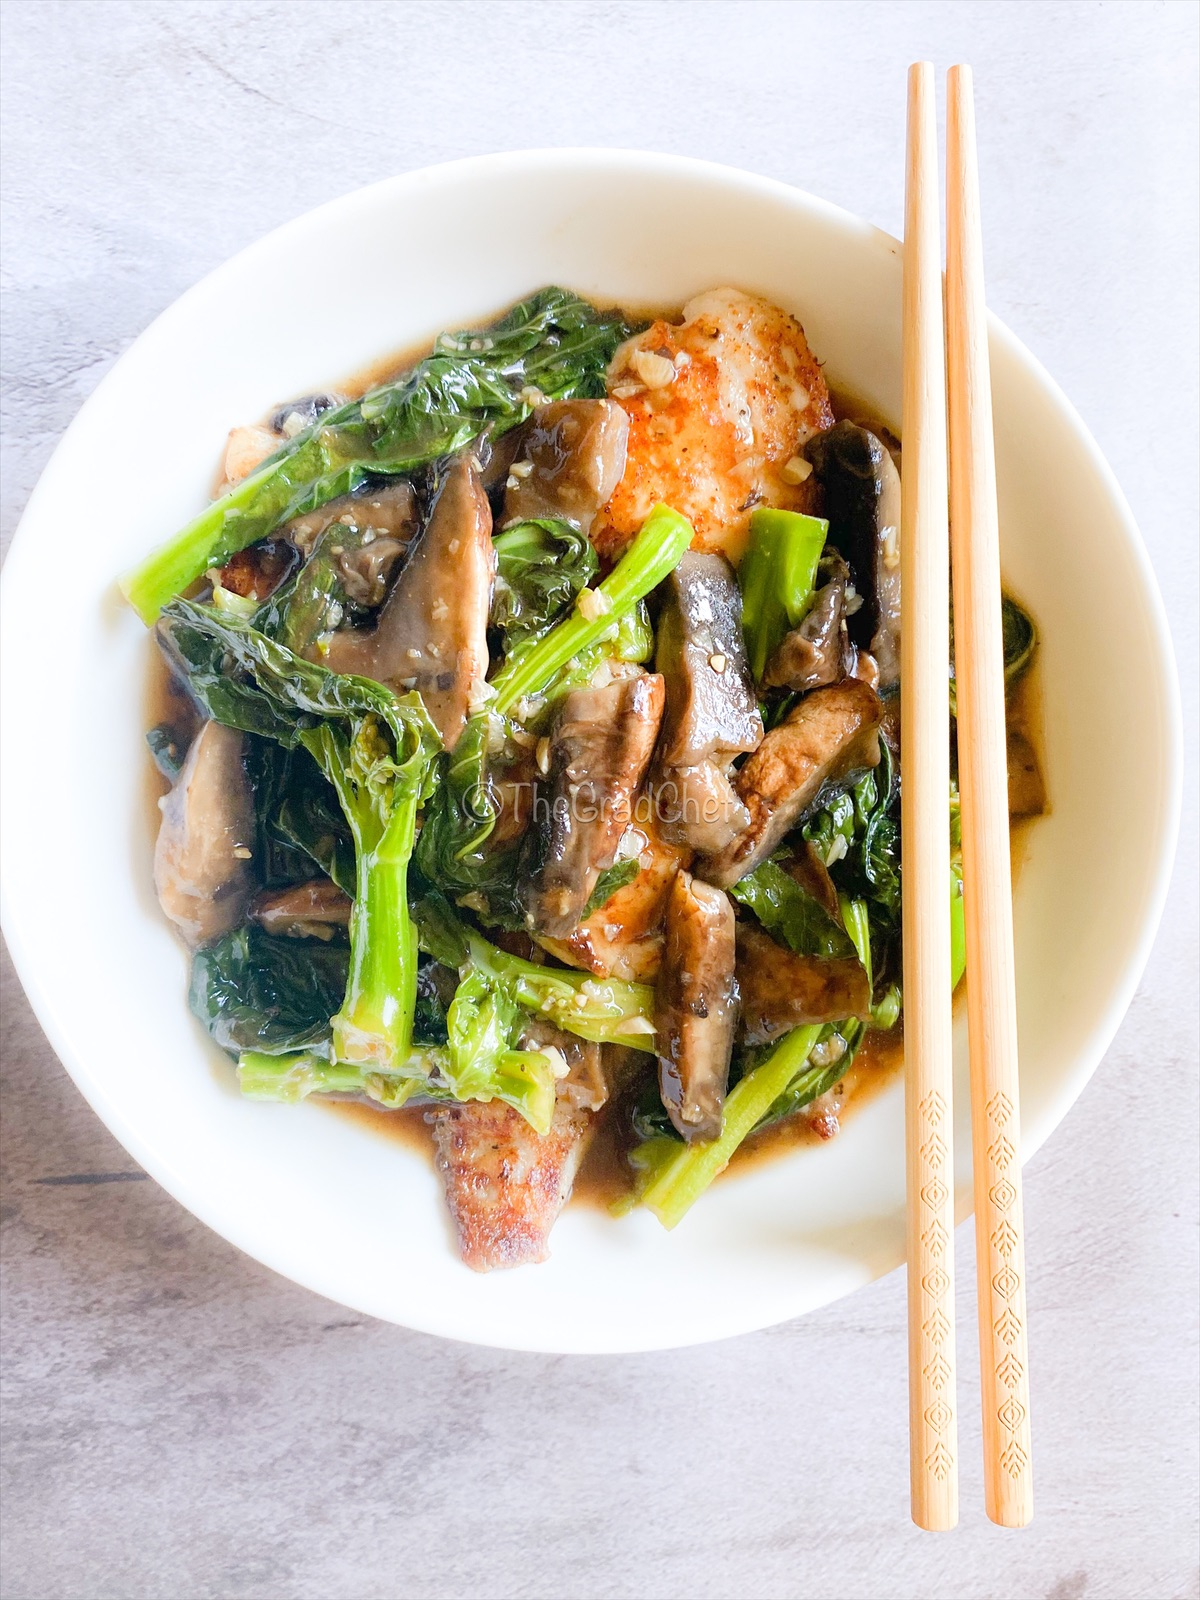 GRILLED FISH WITH GAI LAN AND MUSHROOM